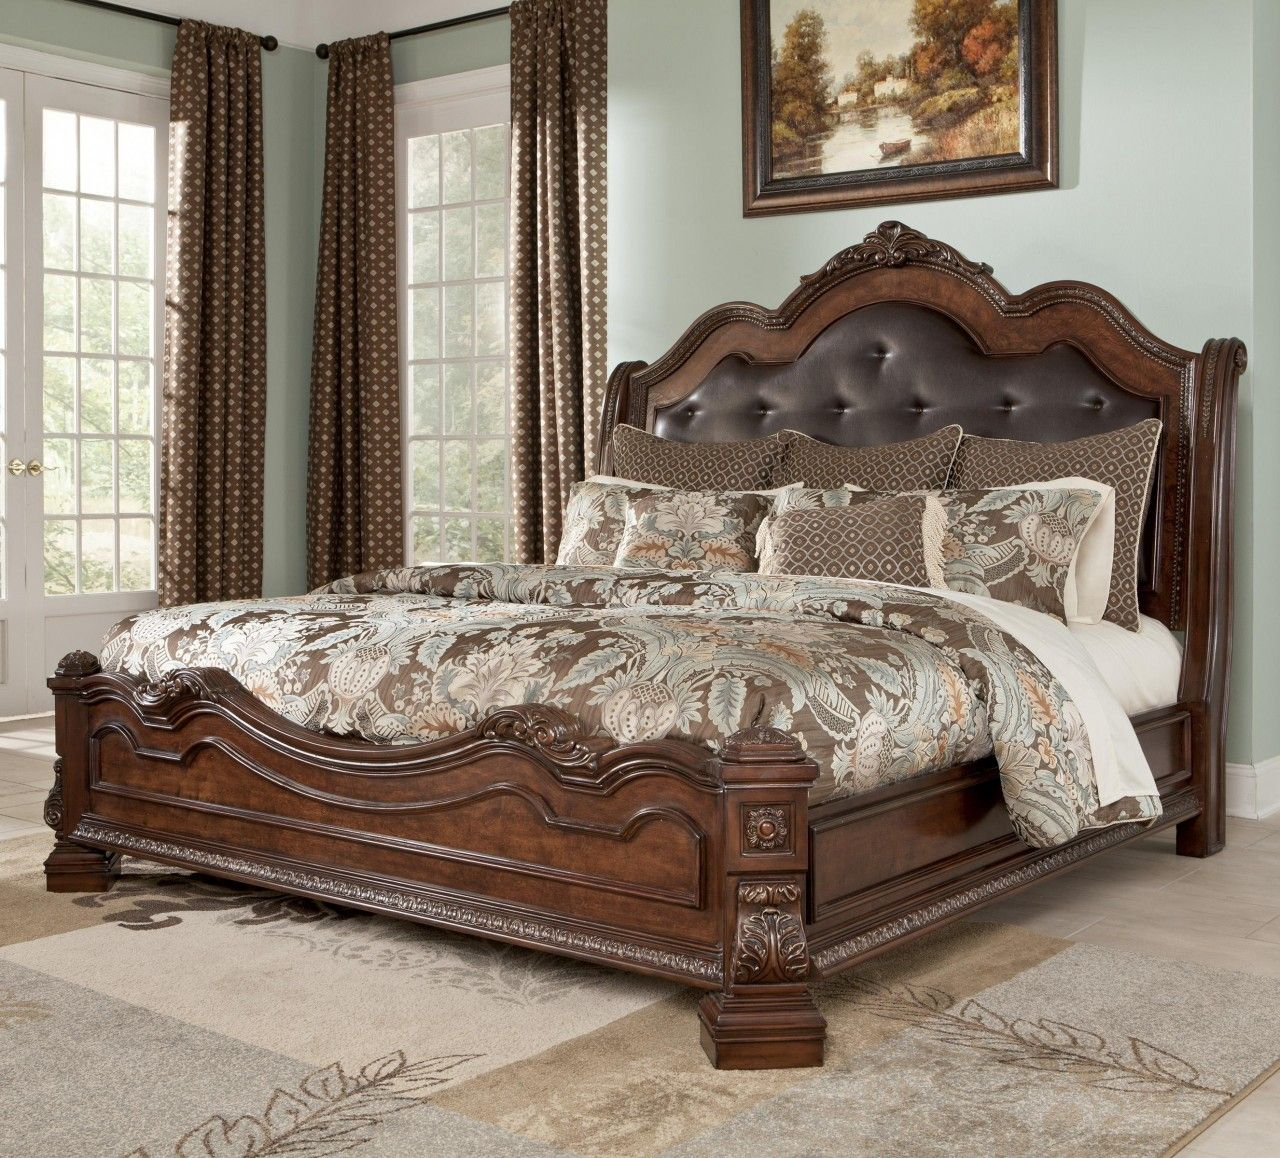 king size bed frame with headboard httpbedroomdecorbacktobosniacom - King Size Bed Frame With Headboard